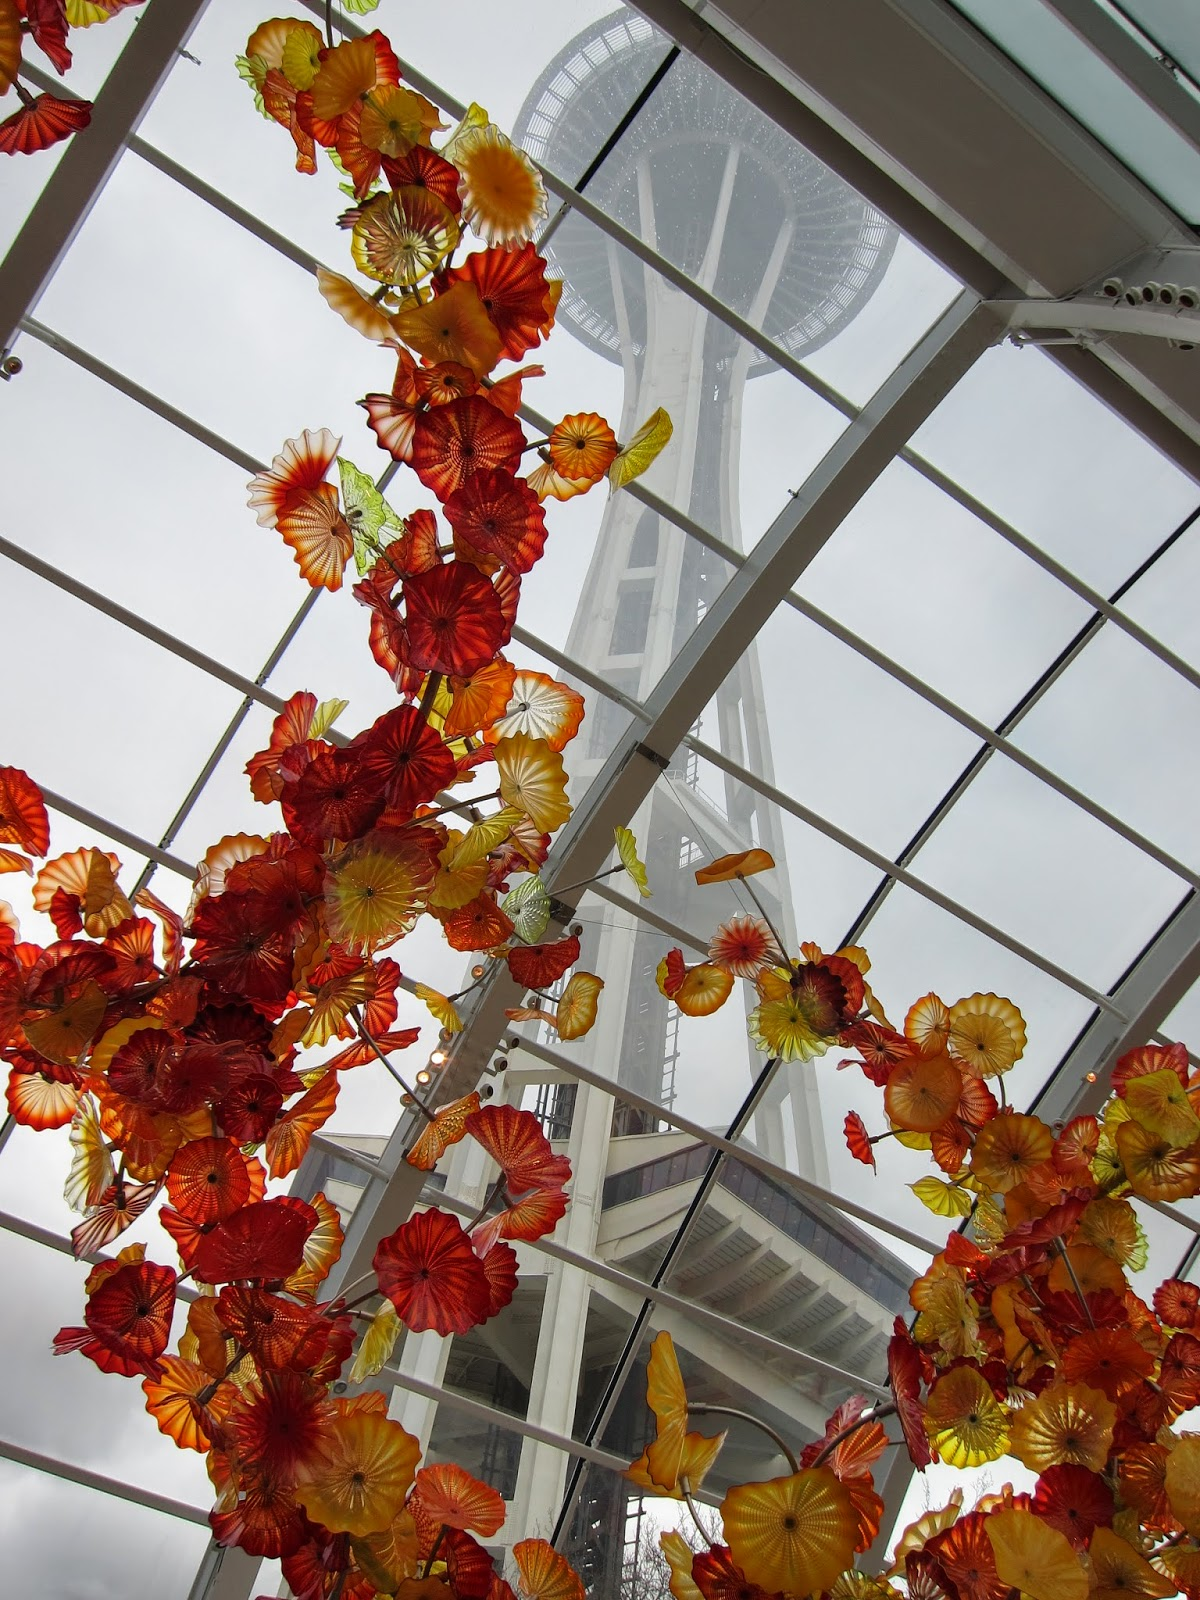 Space Needle from the Chihuly Museum